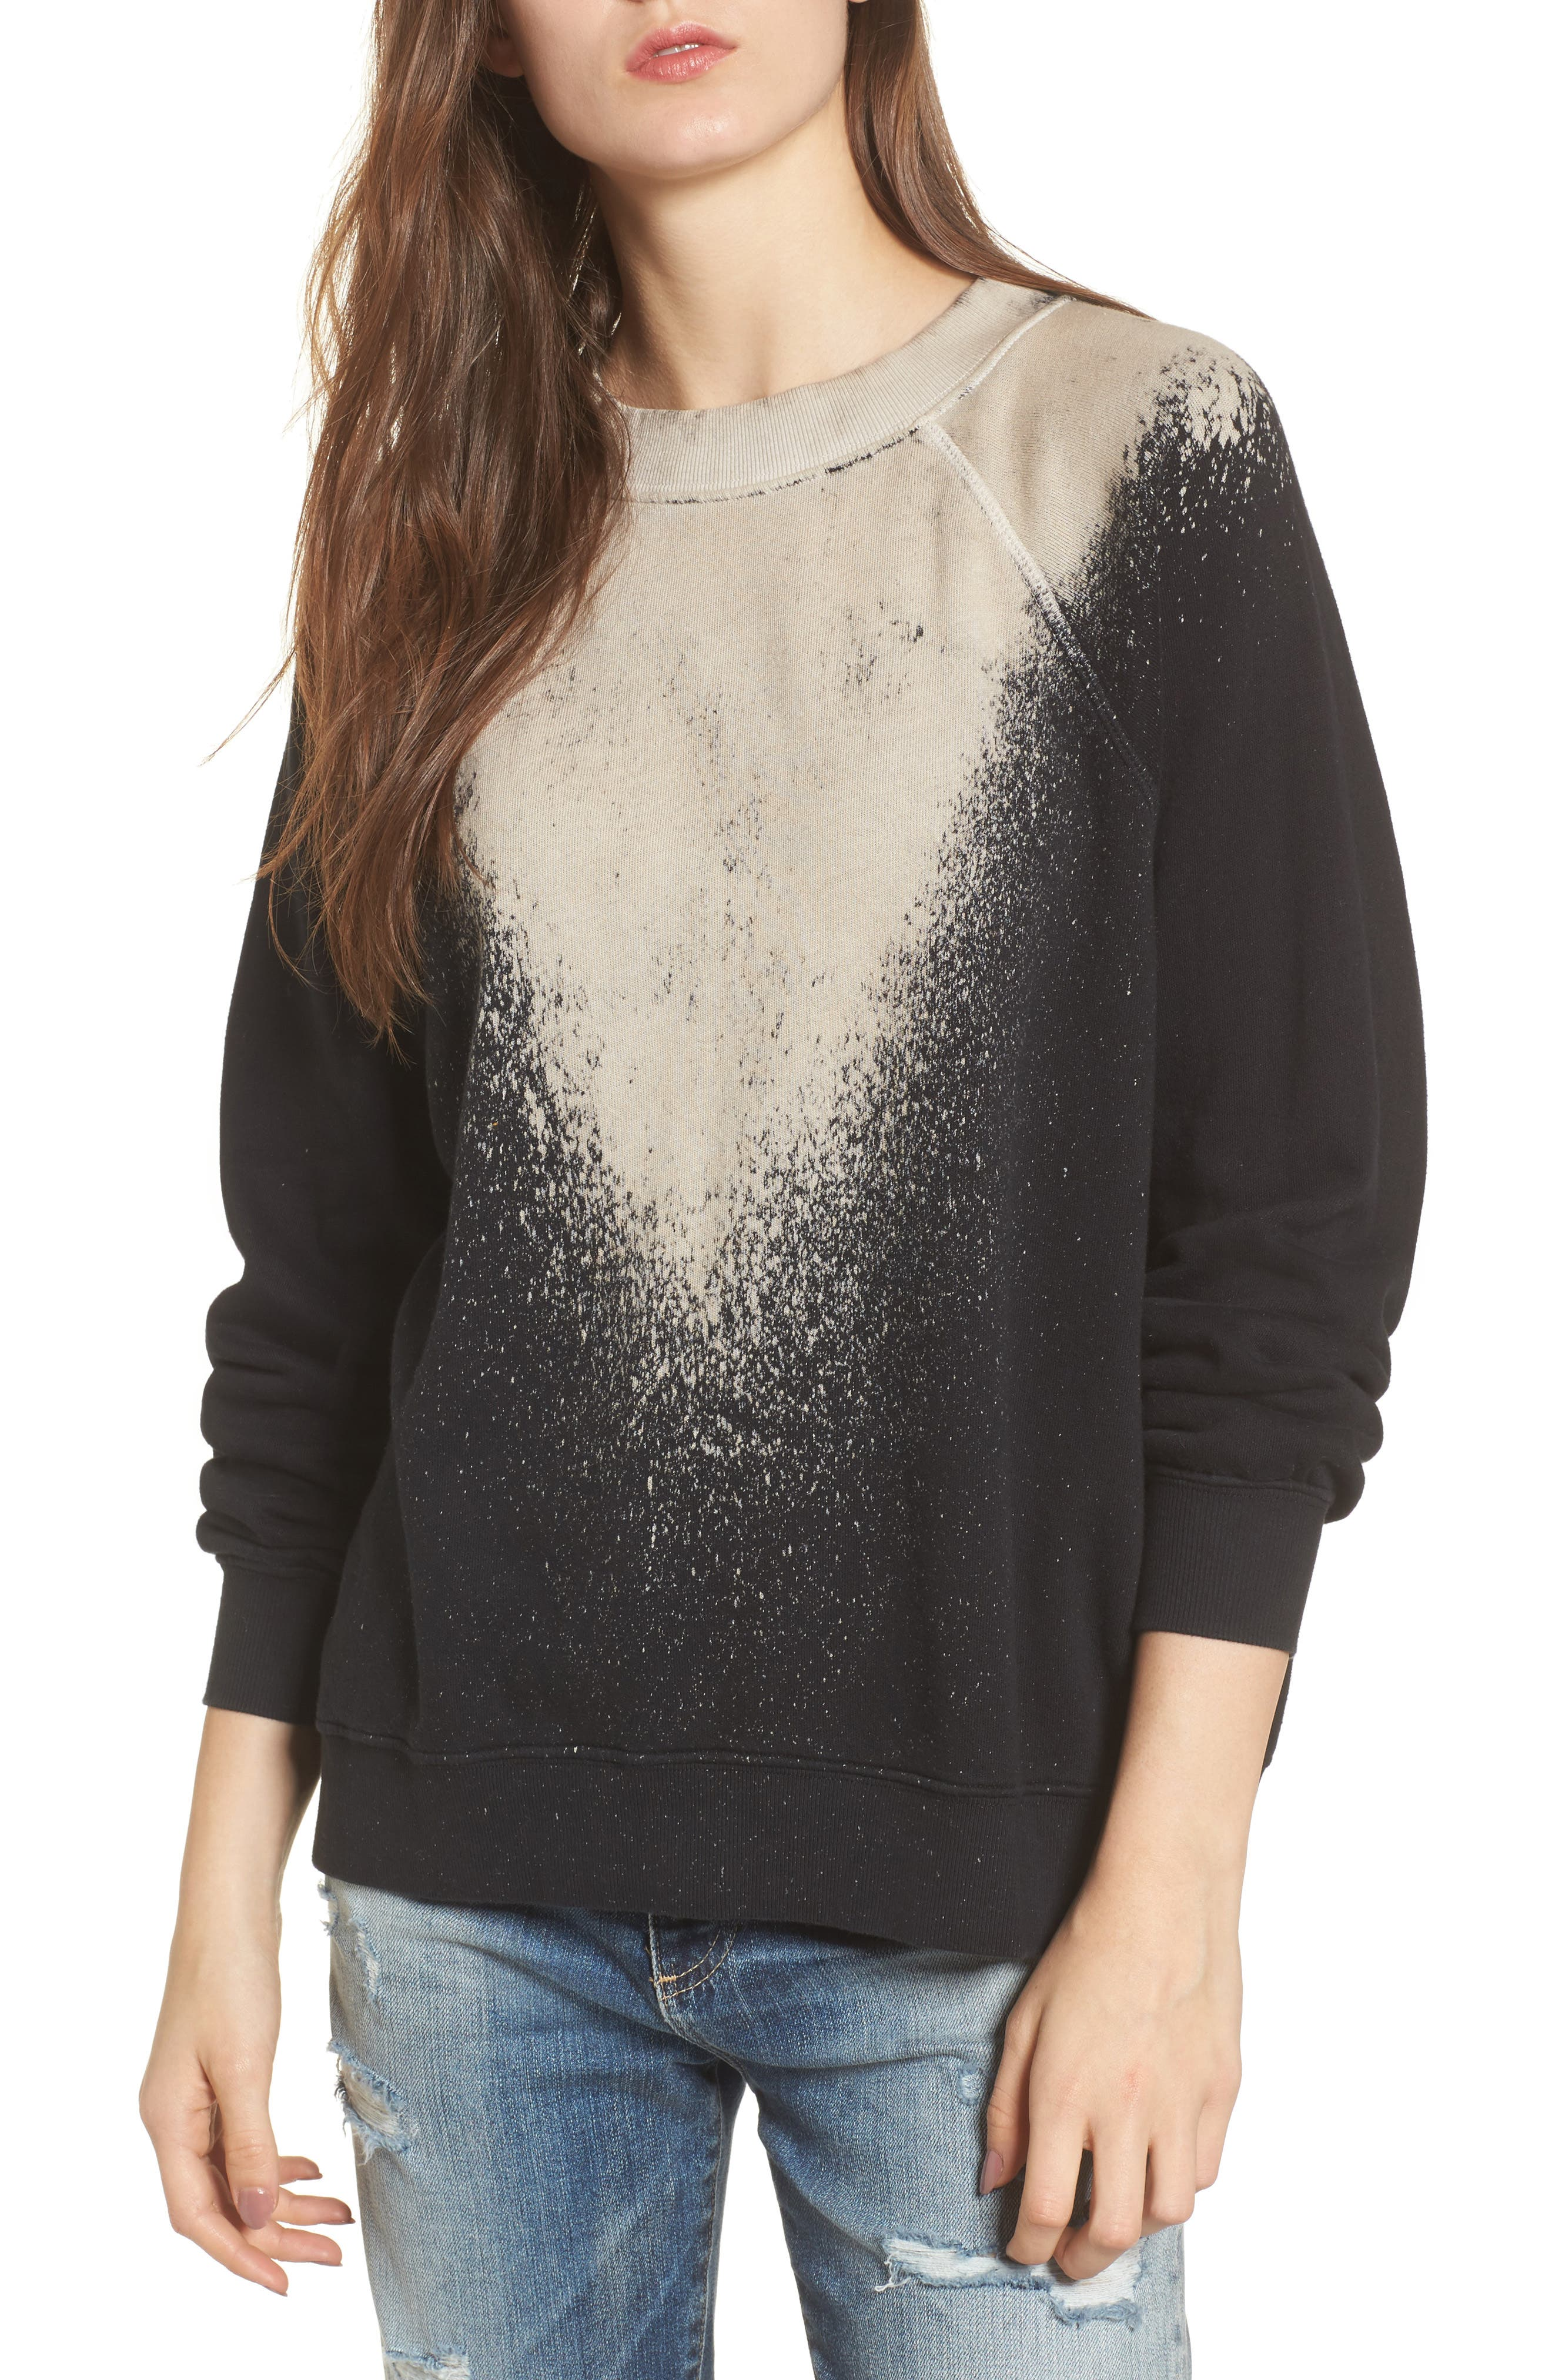 Stardust - Sommers Sweatshirt,                         Main,                         color, Stardust Wash